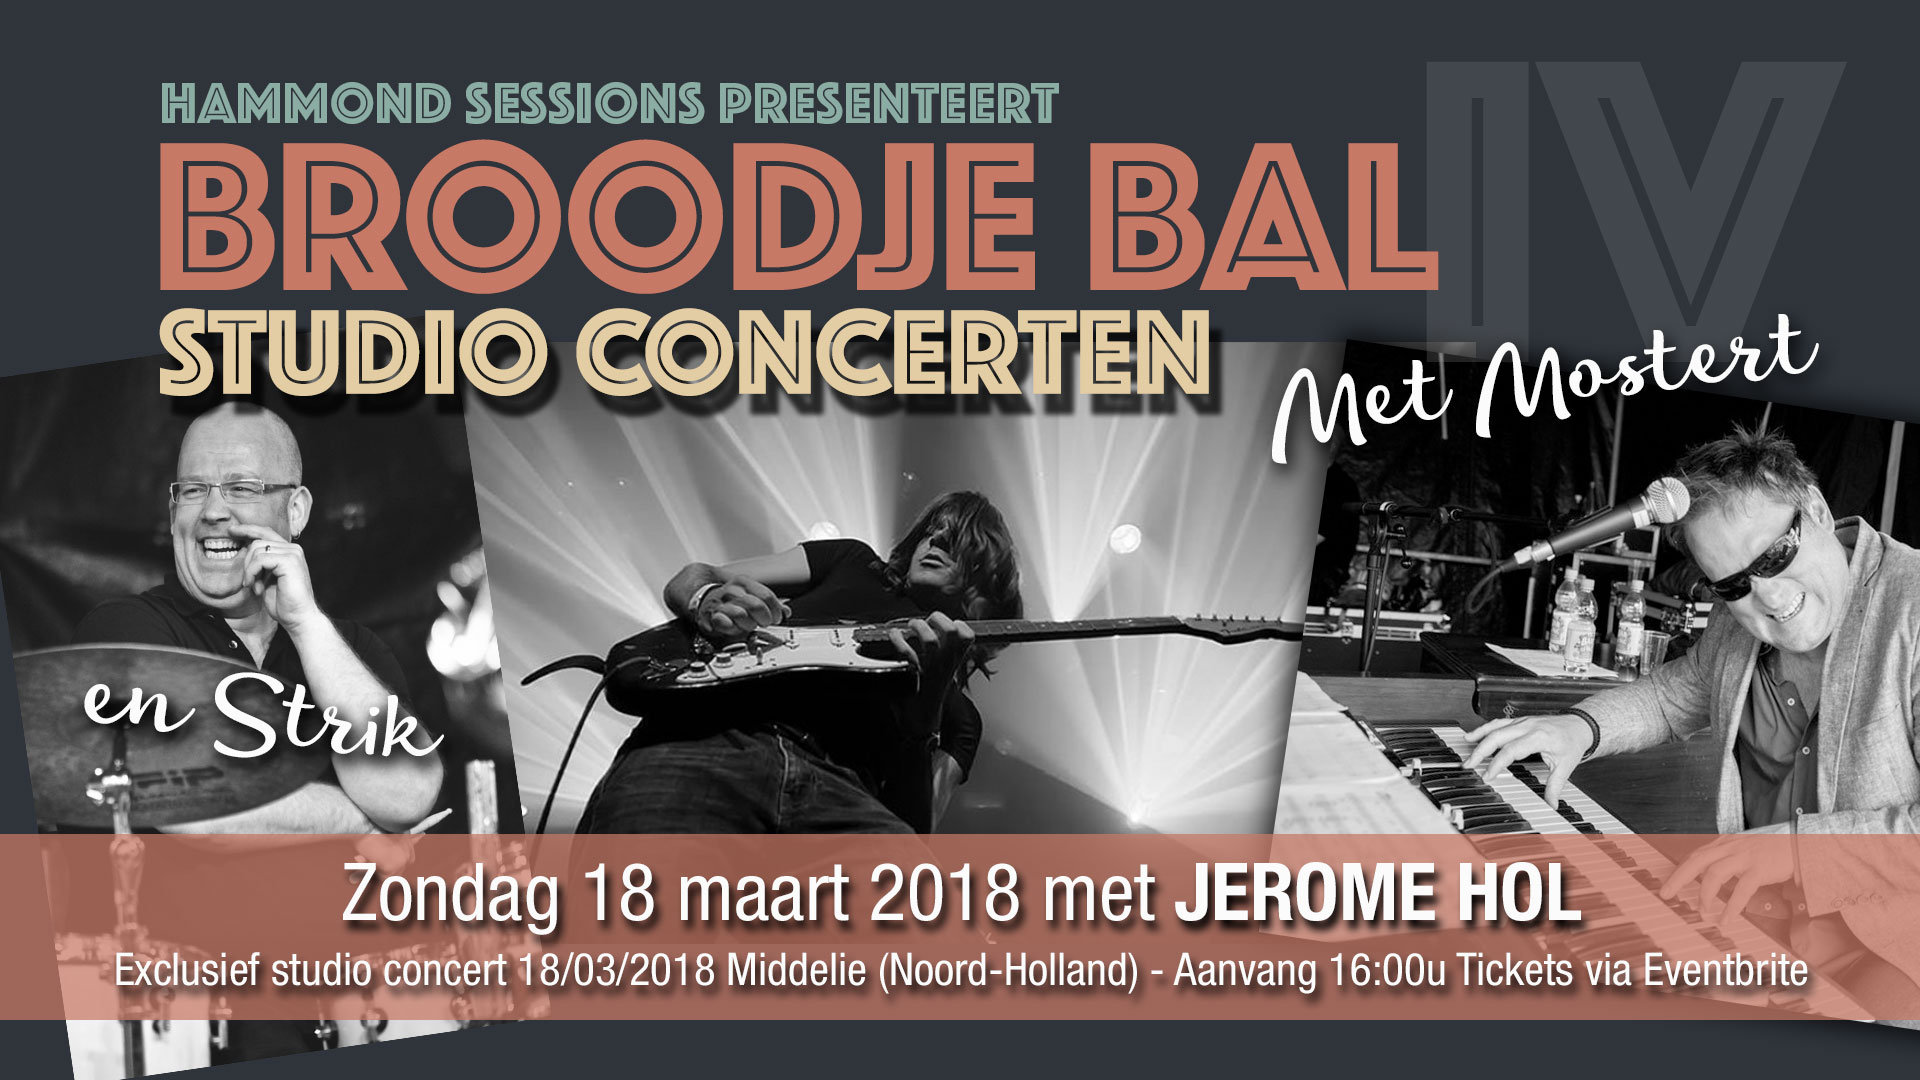 Broodje Bal studio concert met Jerome Hol (Gitaar), Chris Strik (drums) en Rob Mostert (Hammond)